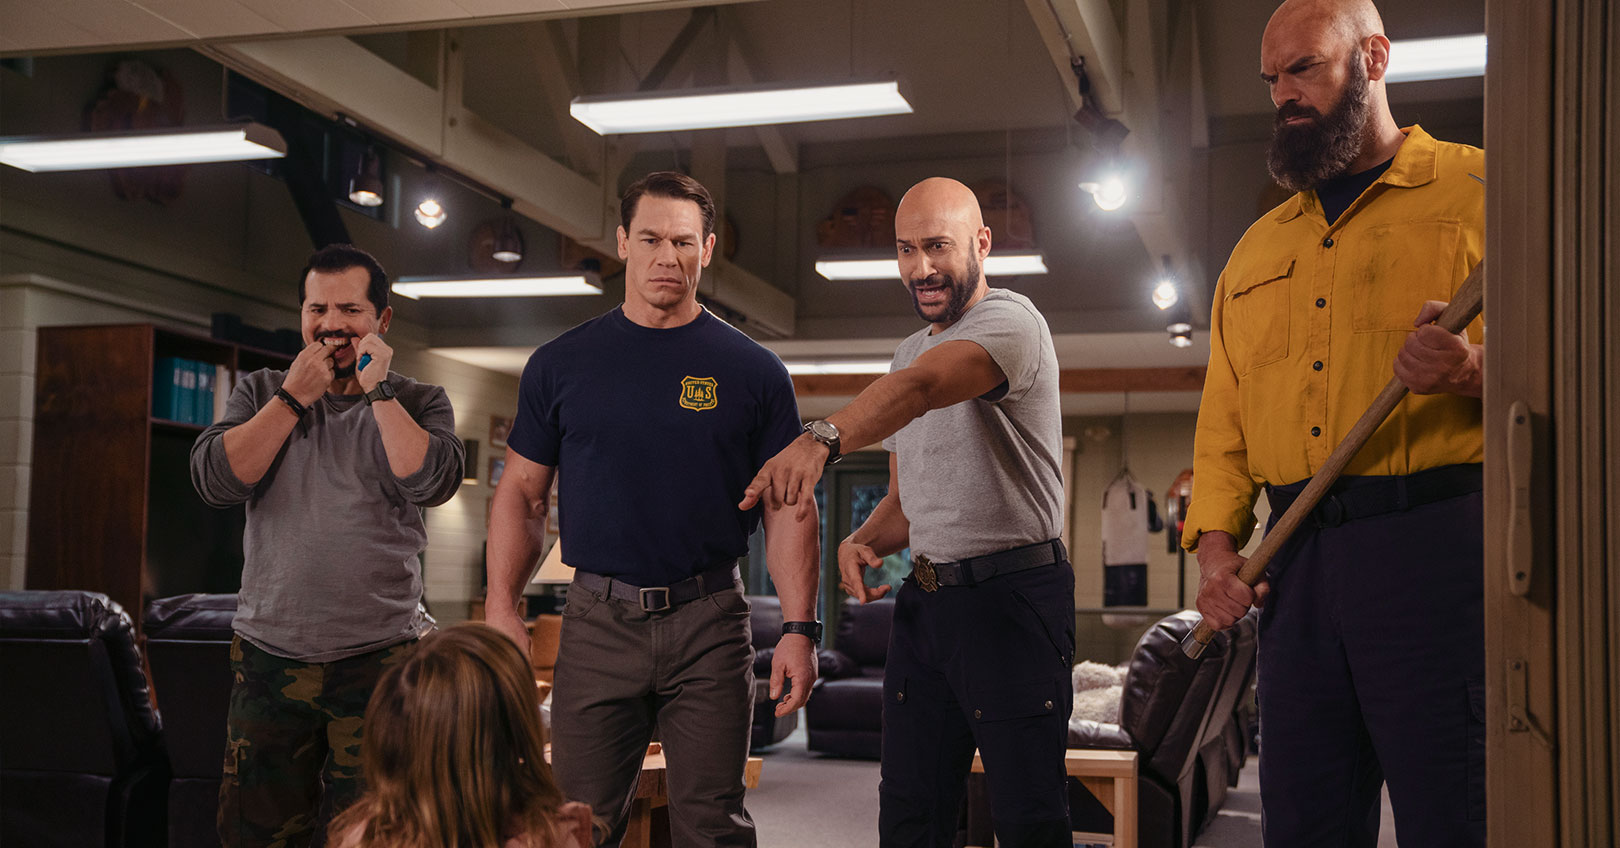 Playing with Fire - John Leguizamo, Finley Rose Slater, John Cena, Keegan-Michael Key, and Tyler Mane